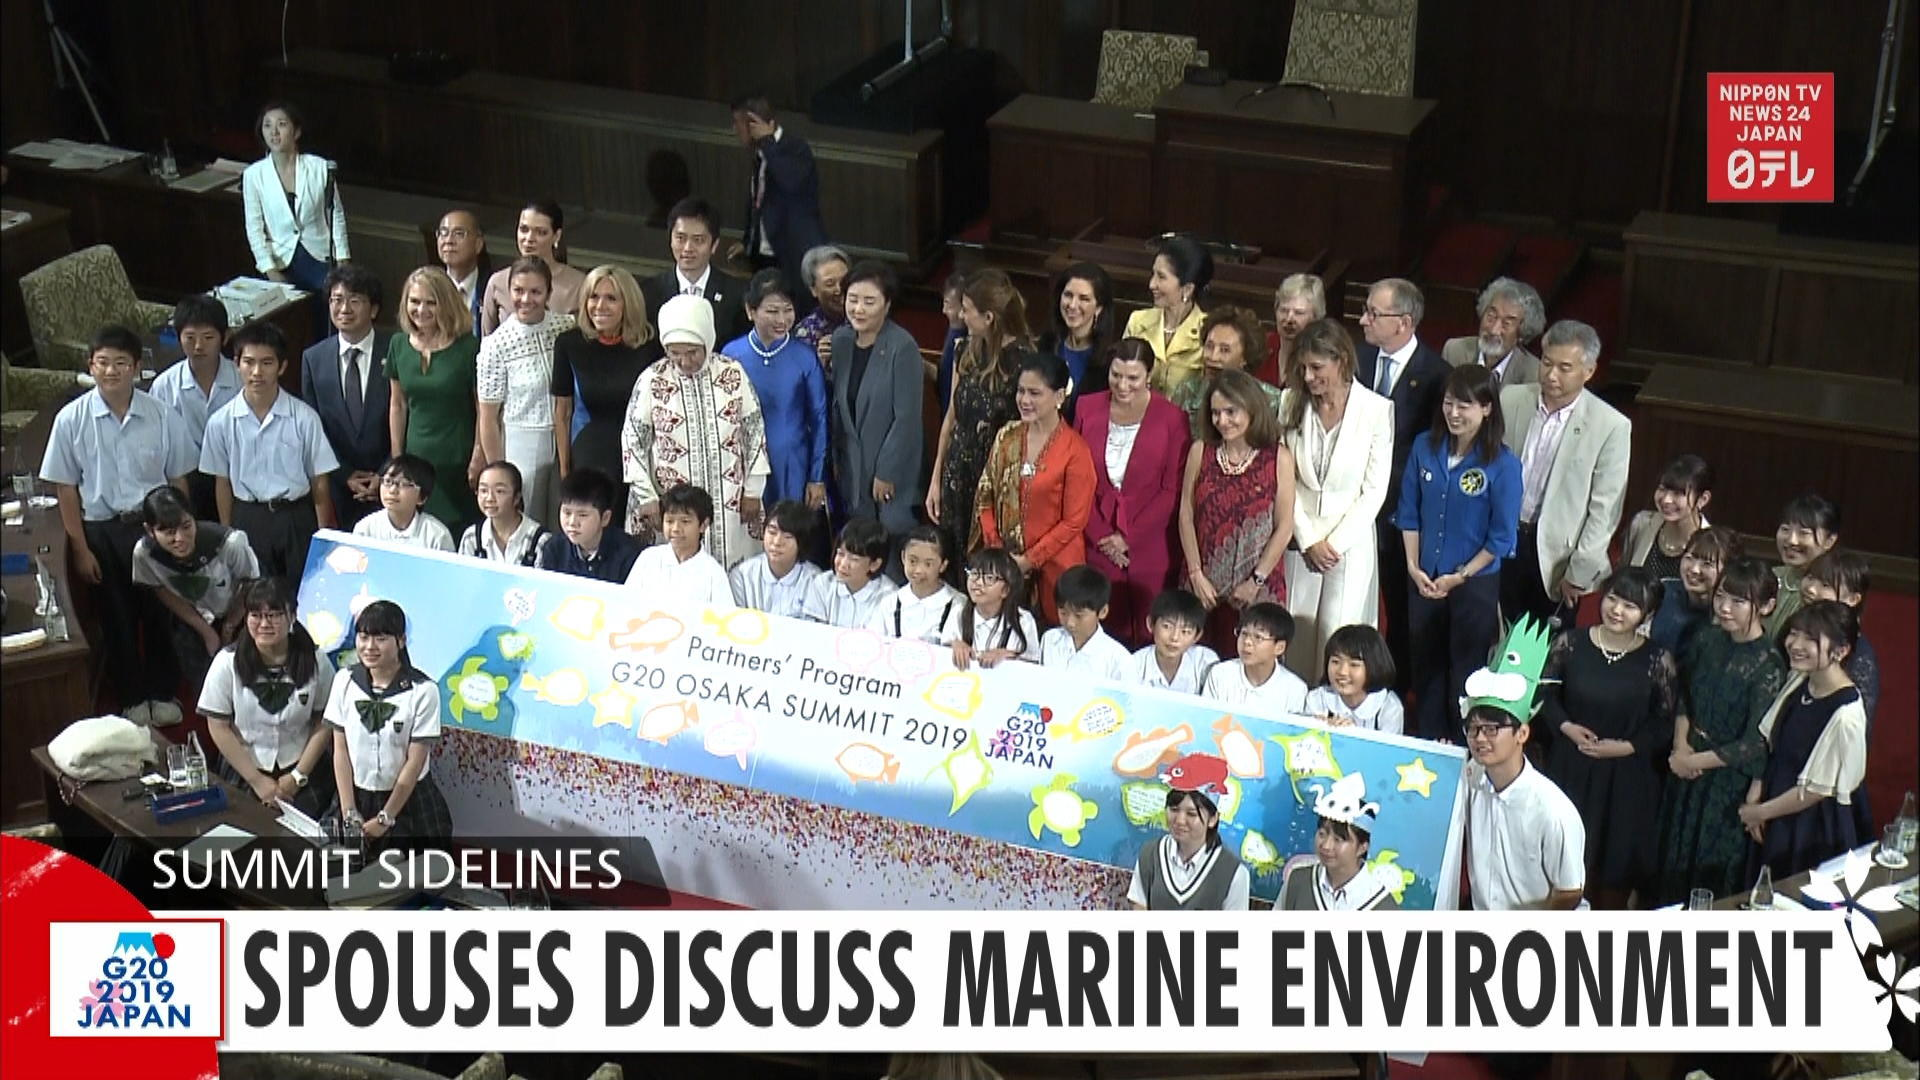 G20: Spouses discuss marine environment